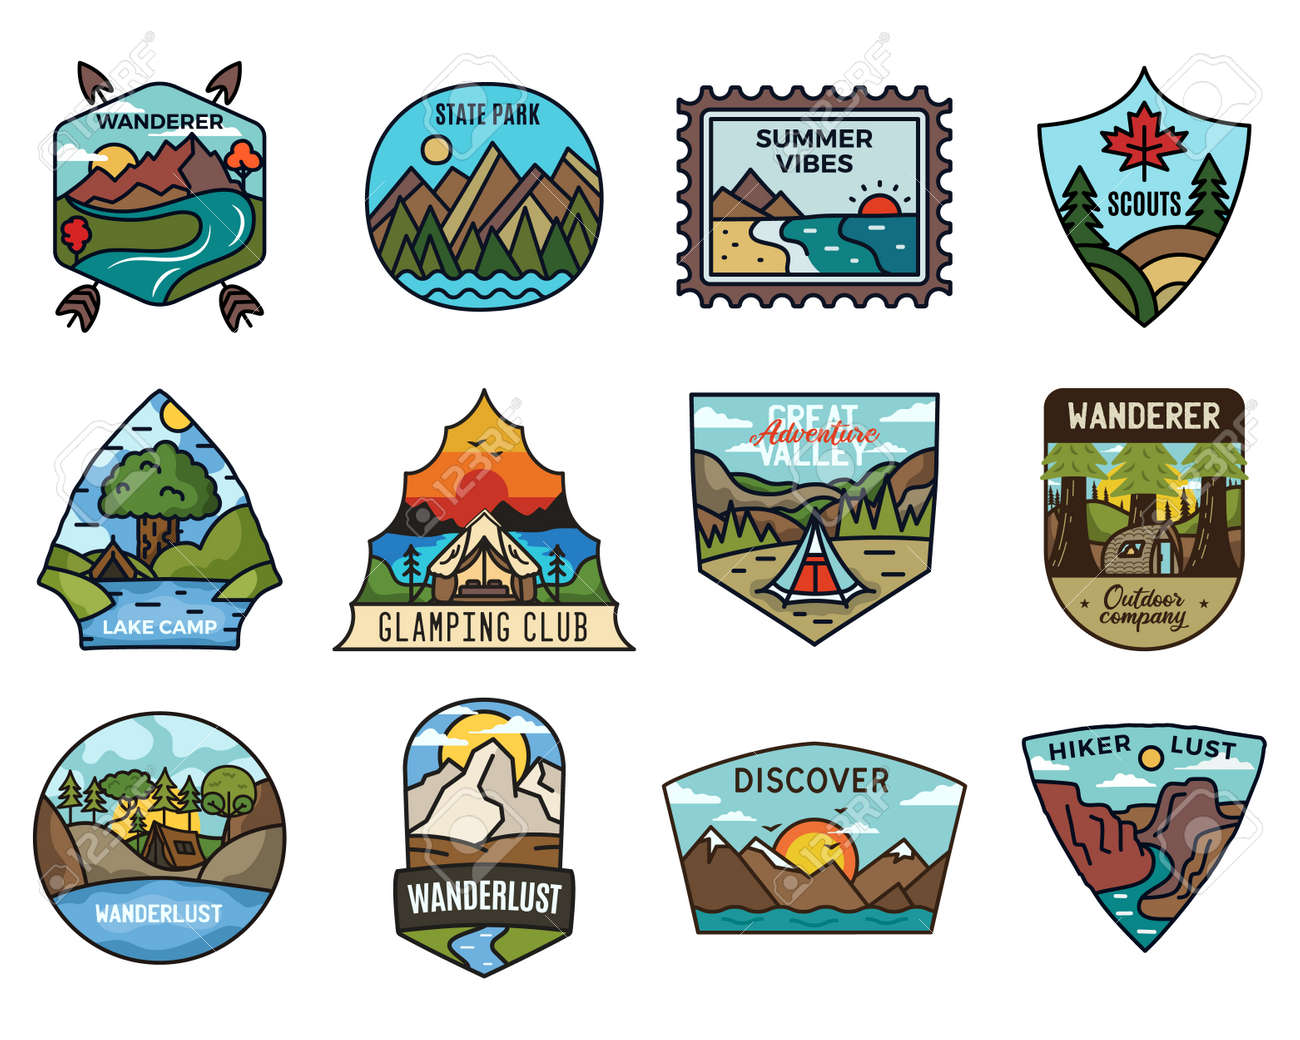 Travel adventure collection, Vintage camping emblems. Hand drawn hiking emblems, mountain stickers designs bundle. Discover, state park badges, scouts labels. Stock vector. - 166266057